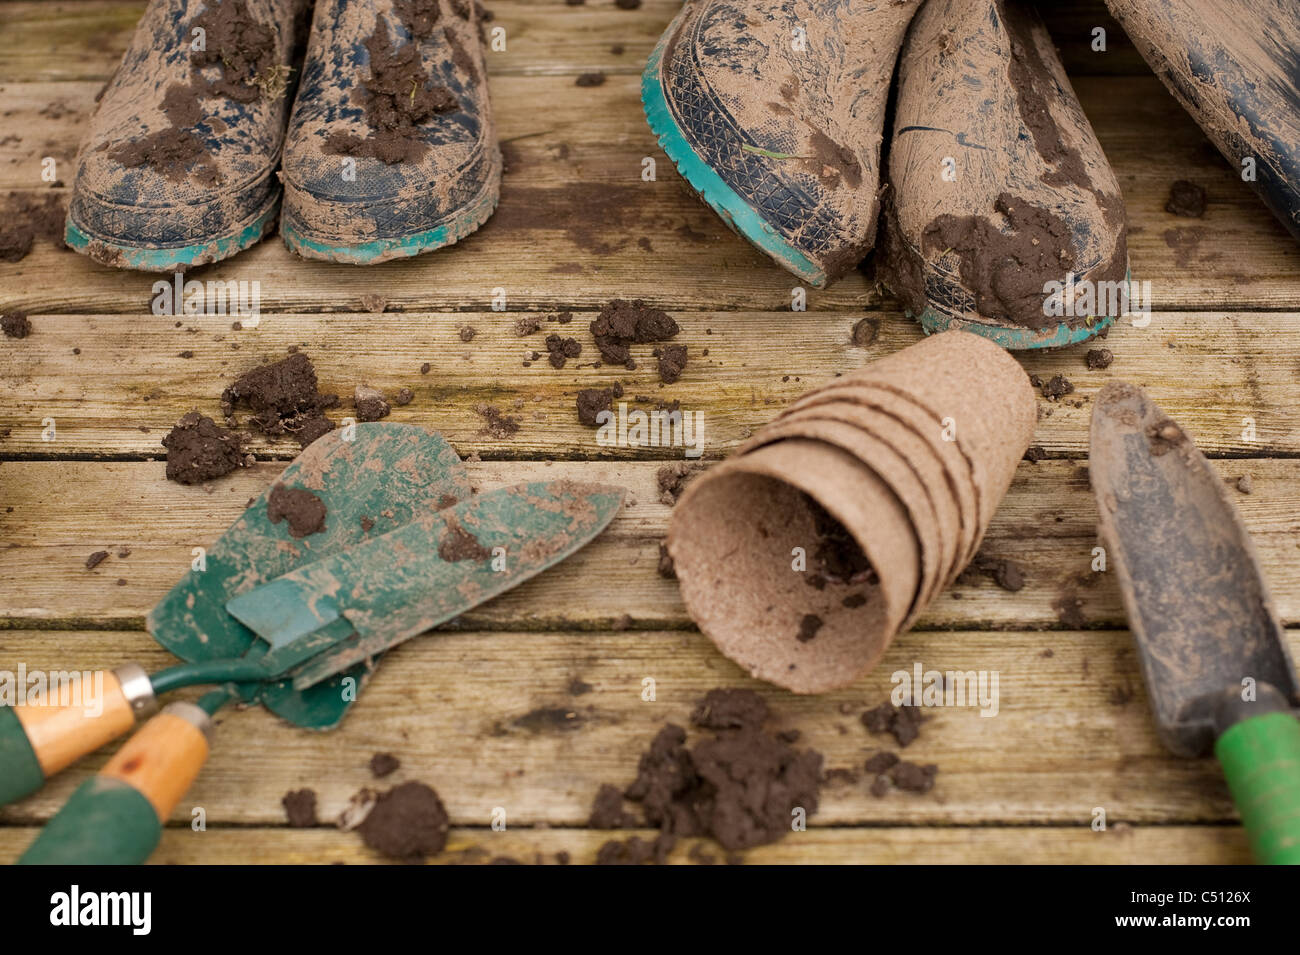 Muddy boots and gardening tools on back deck with flower pots with hyacinth bulb in pot after working in garden. Stock Photo